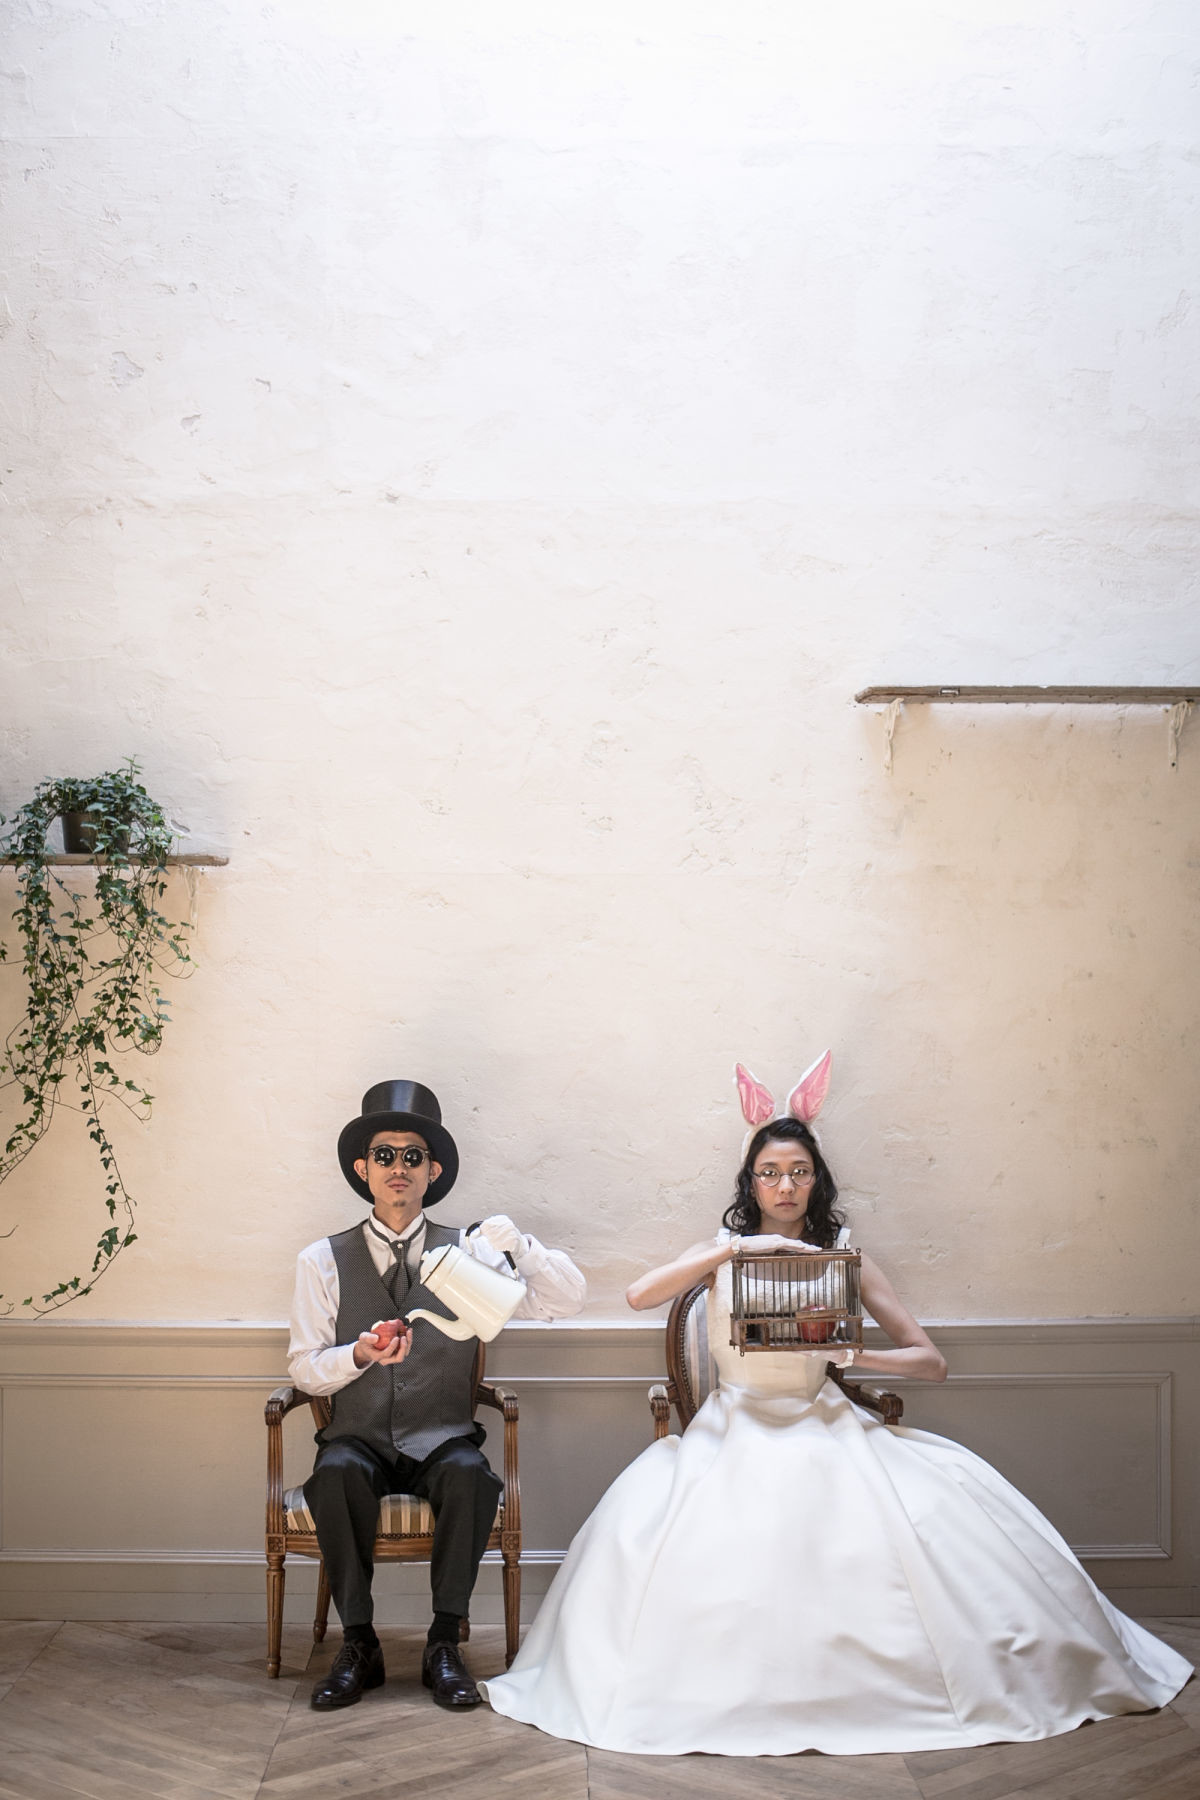 Alice in Wonderland inspired pre wedding photo shoot — Photo by ONESTYLE wedding photo